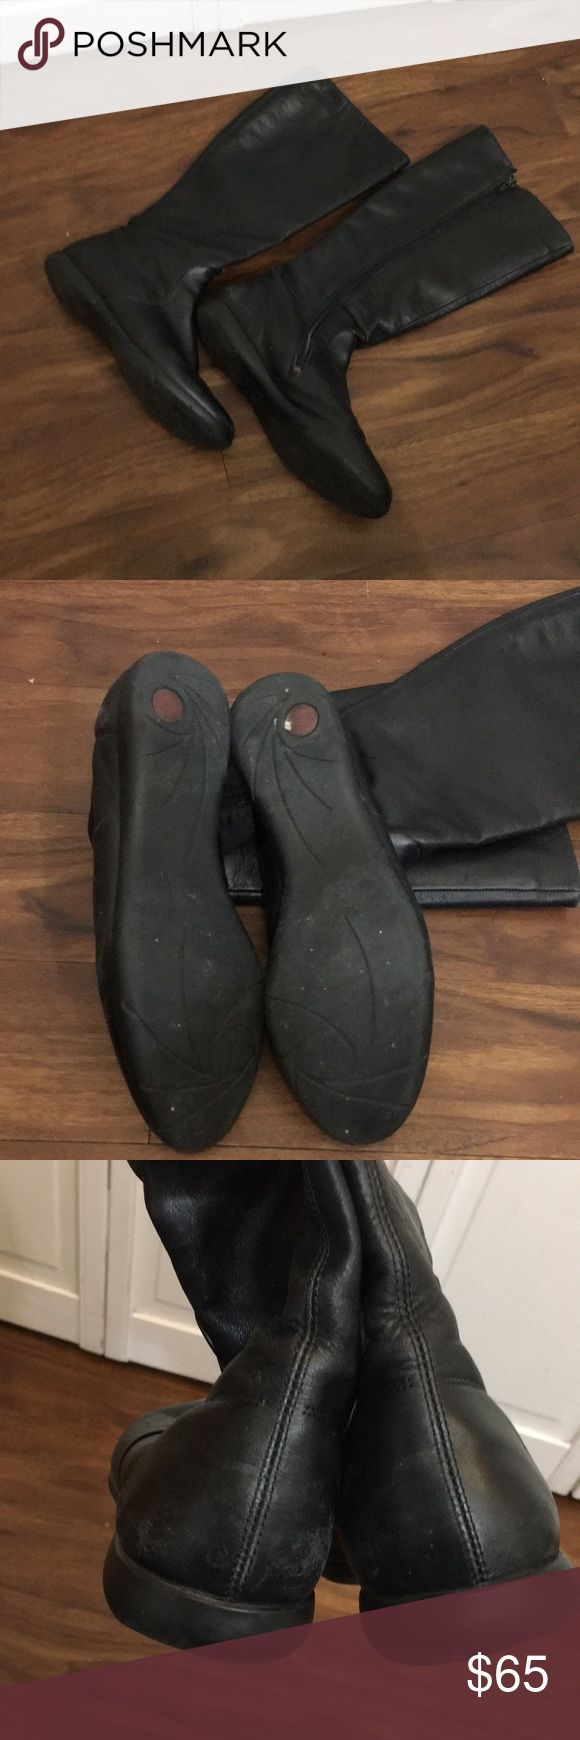 Camper boots, size 40. (9) Black camper boots, size 40 (9). Soft leather, great boots! Worn, as in photos, but still has a lot of life left! I am a true size 9. Camper Shoes